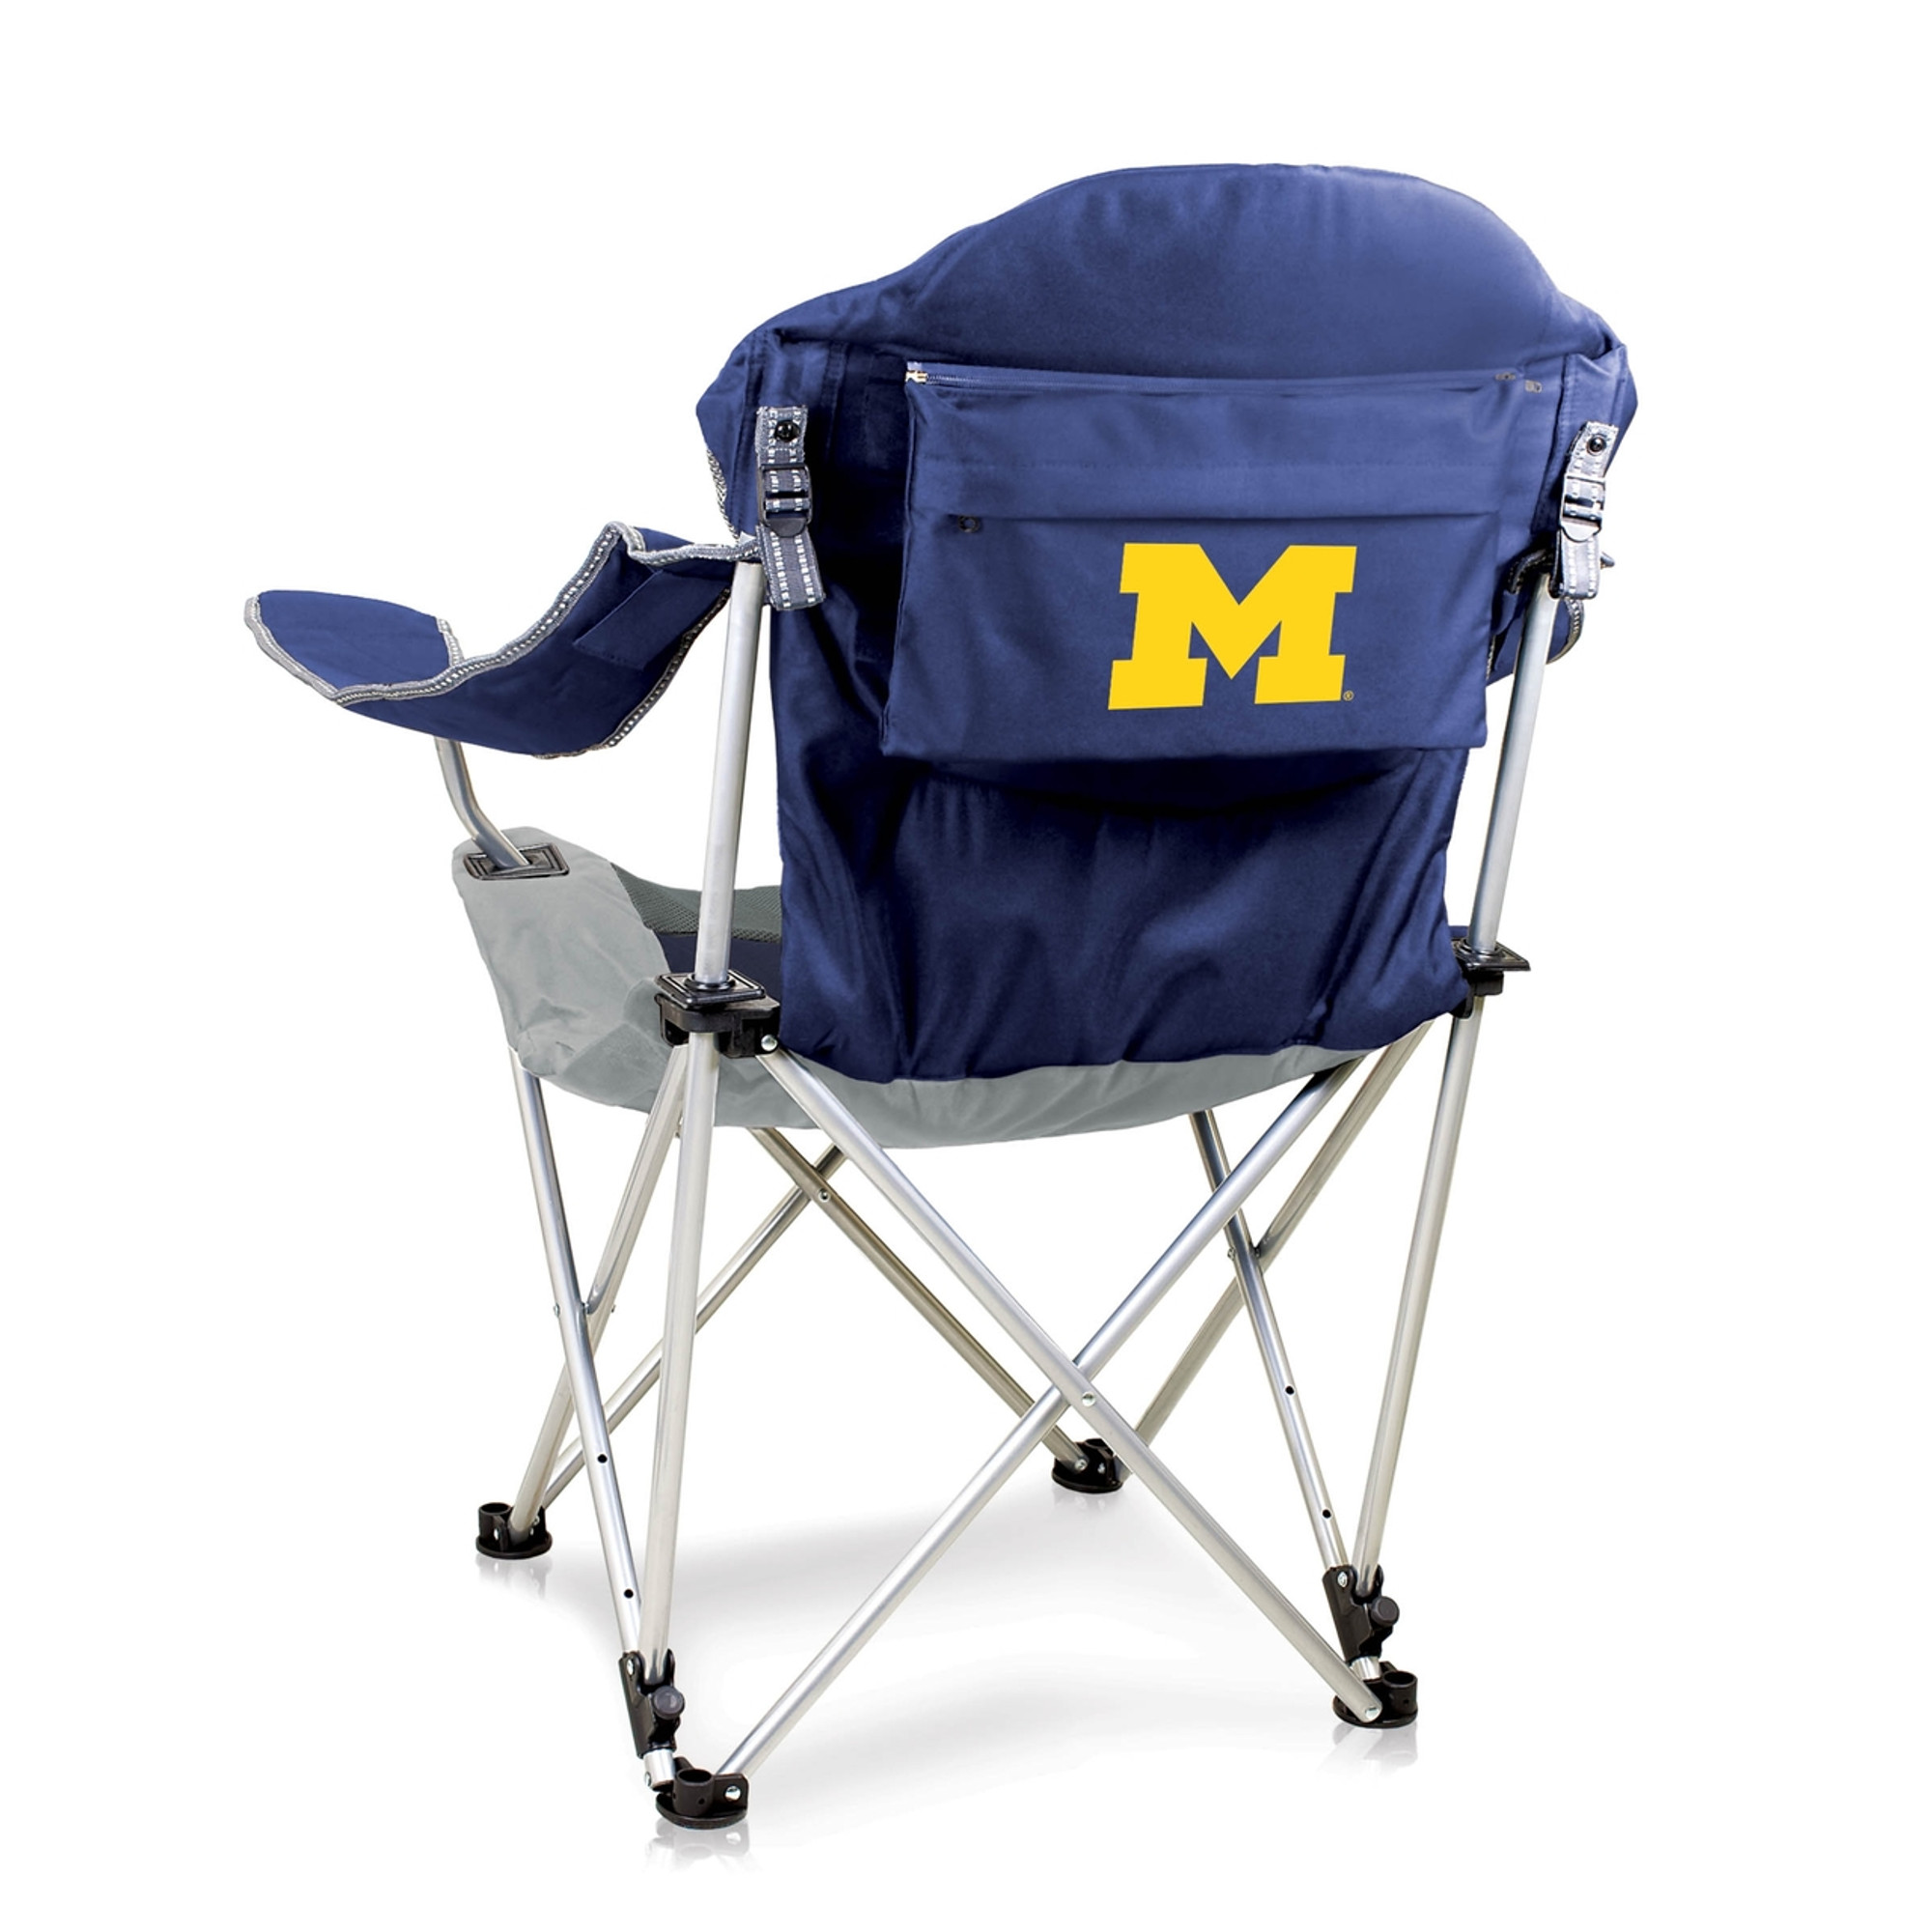 lsu folding chairs high back mesh chair with headrest michigan wolverines reclining camp